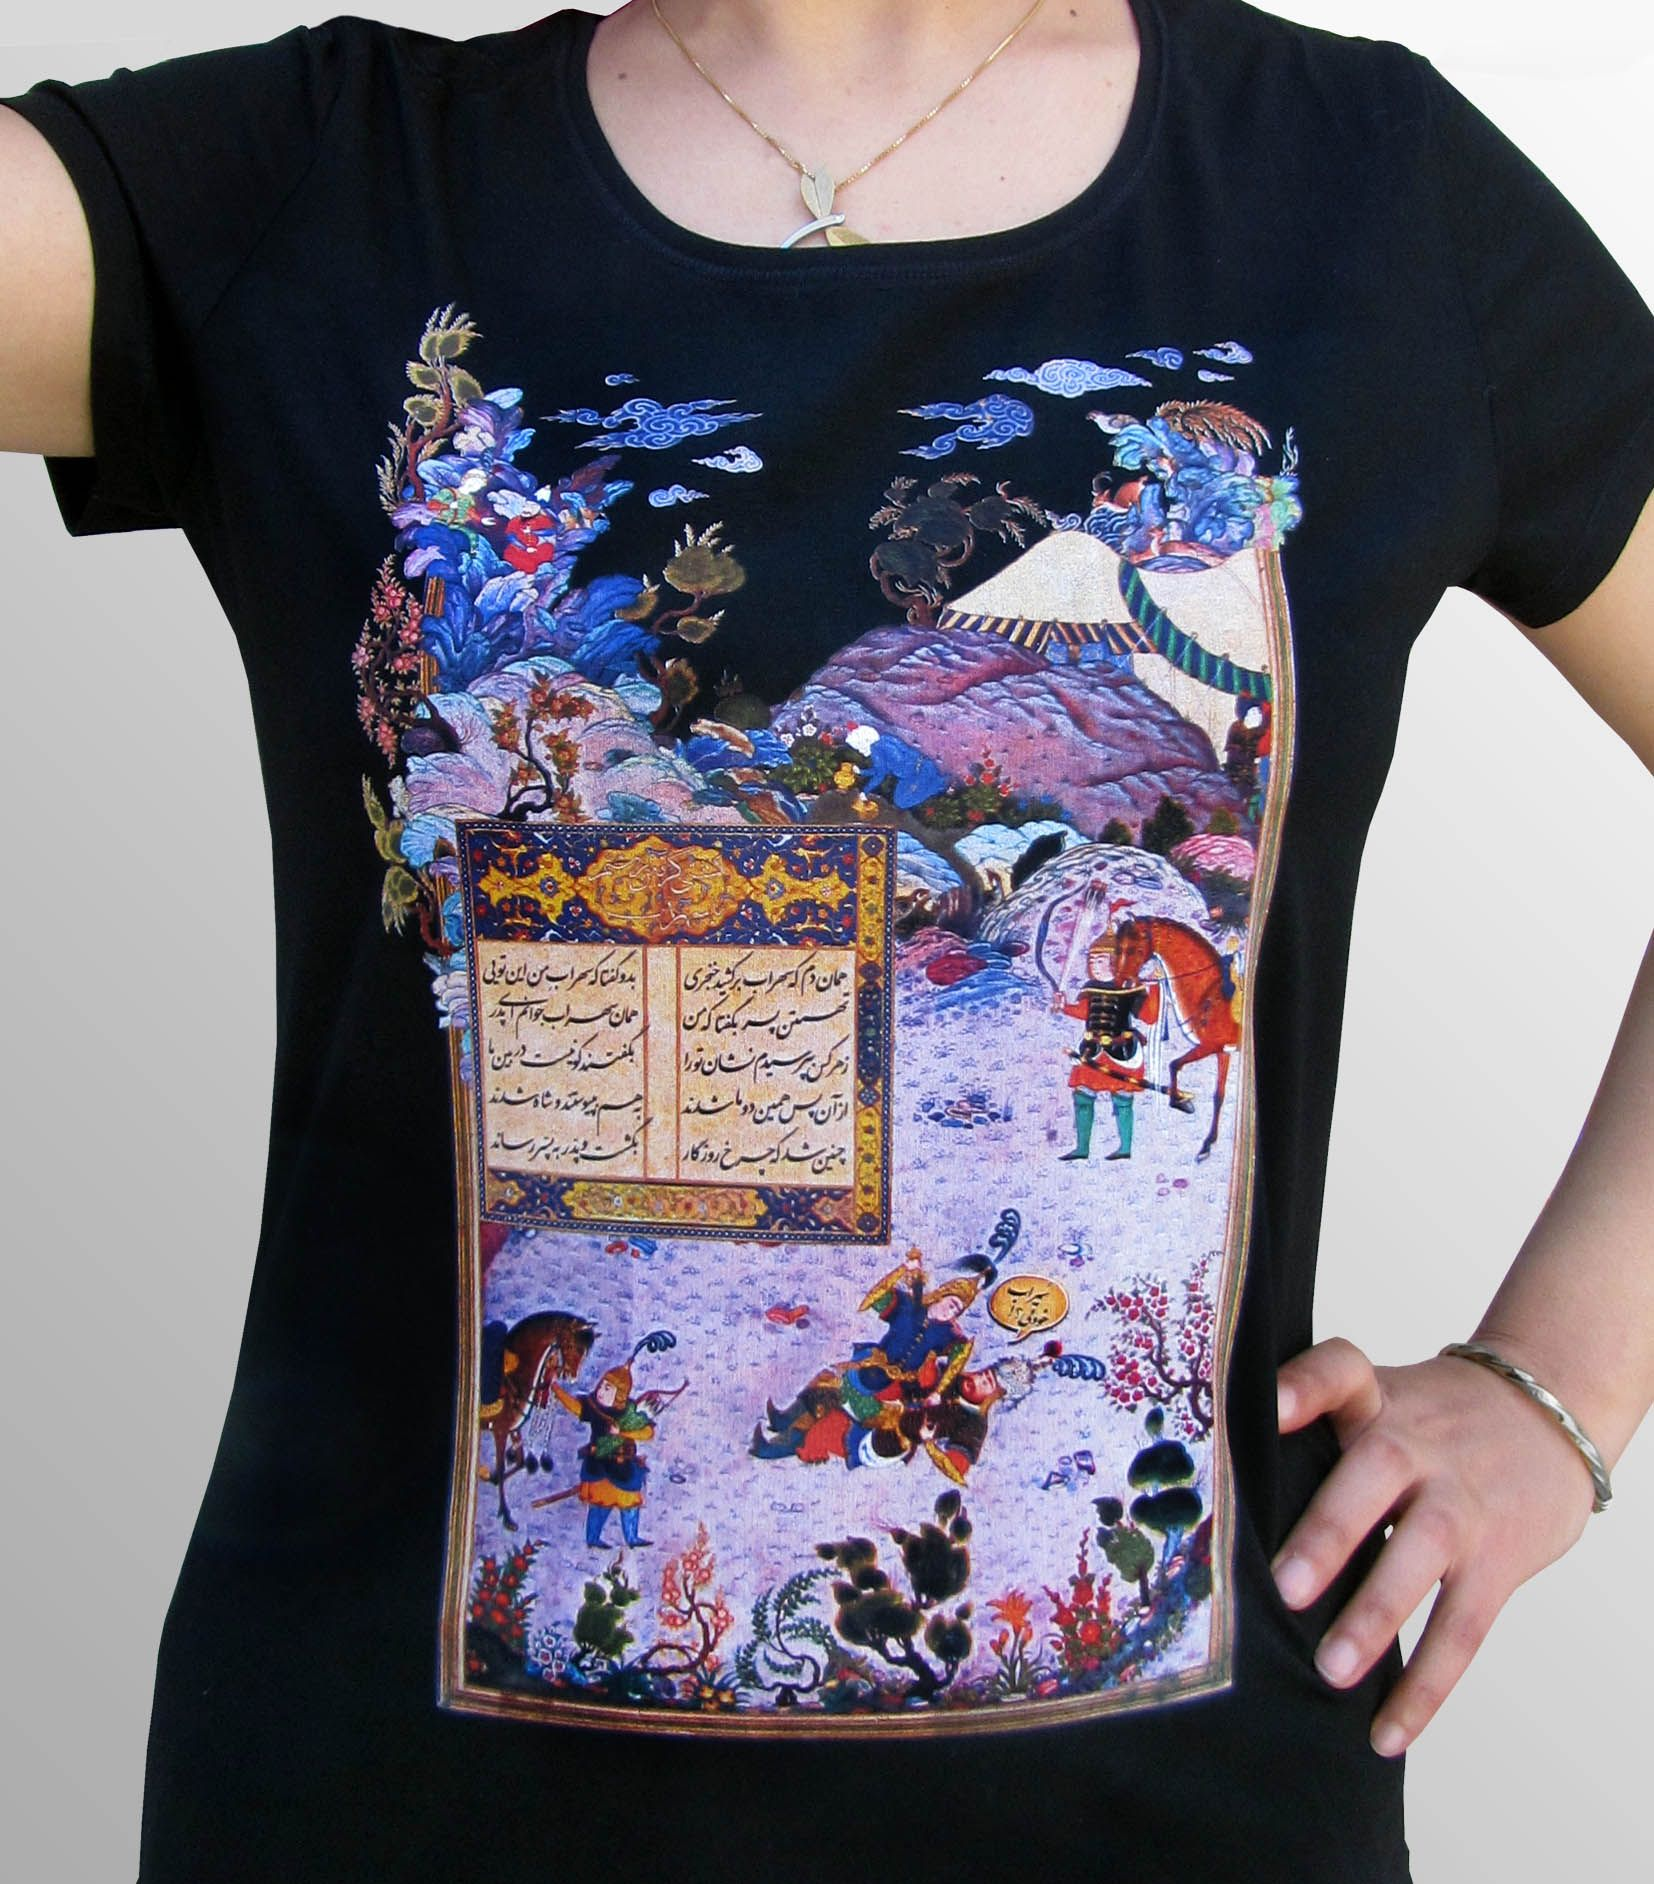 T-shirt design handmade - Our Handmade T Shirts Are Inspired By The Re Birthing Of Persian Art